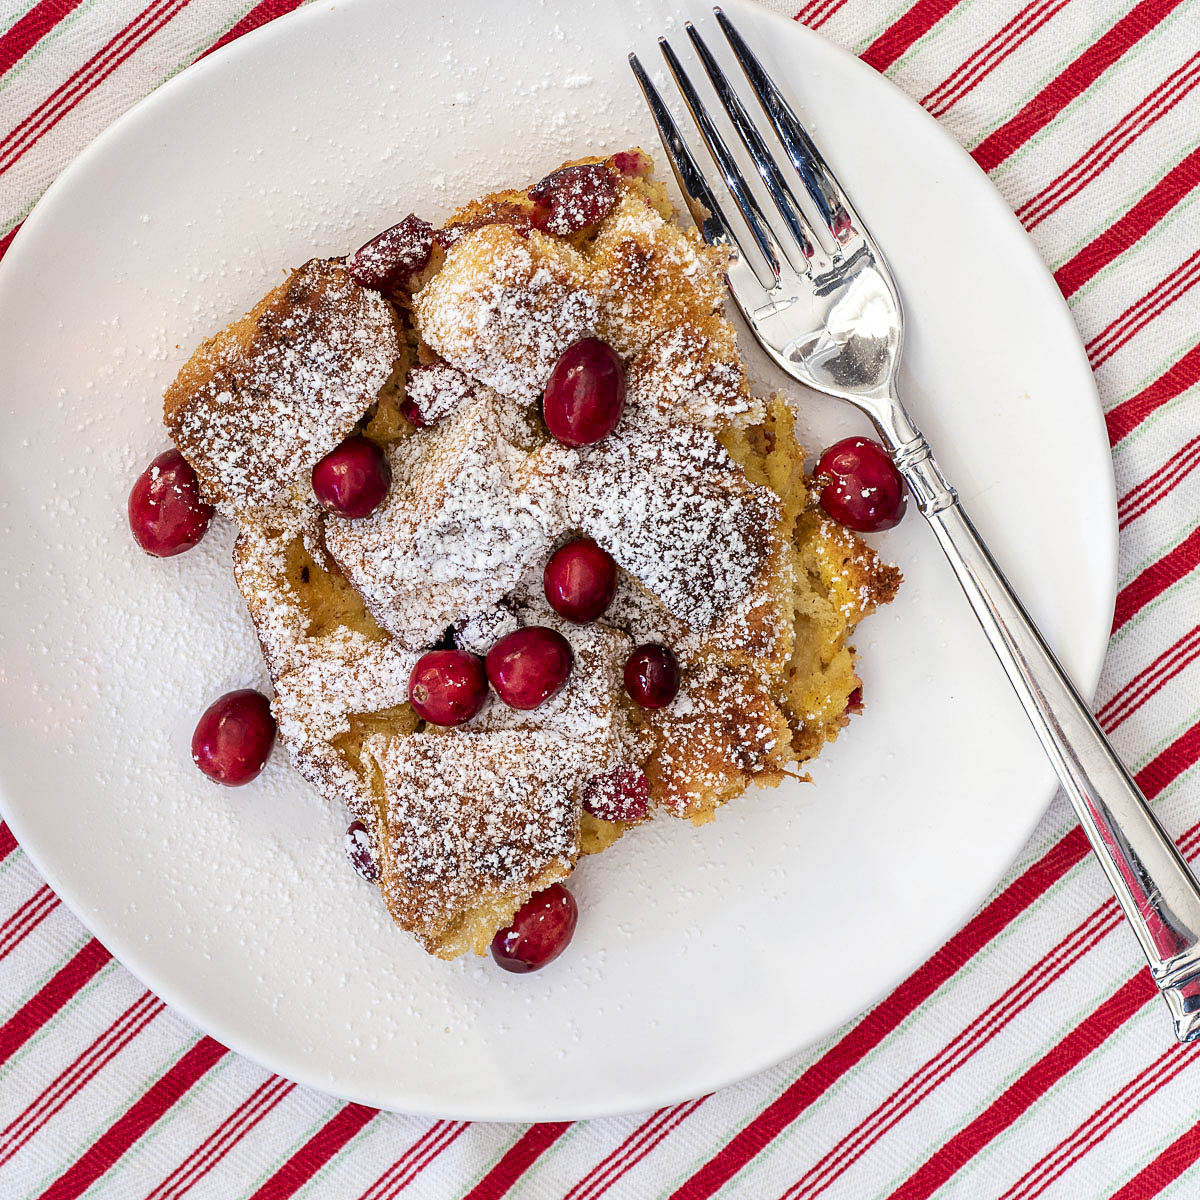 A dish of Cranberry Eggnog French Toast Bake